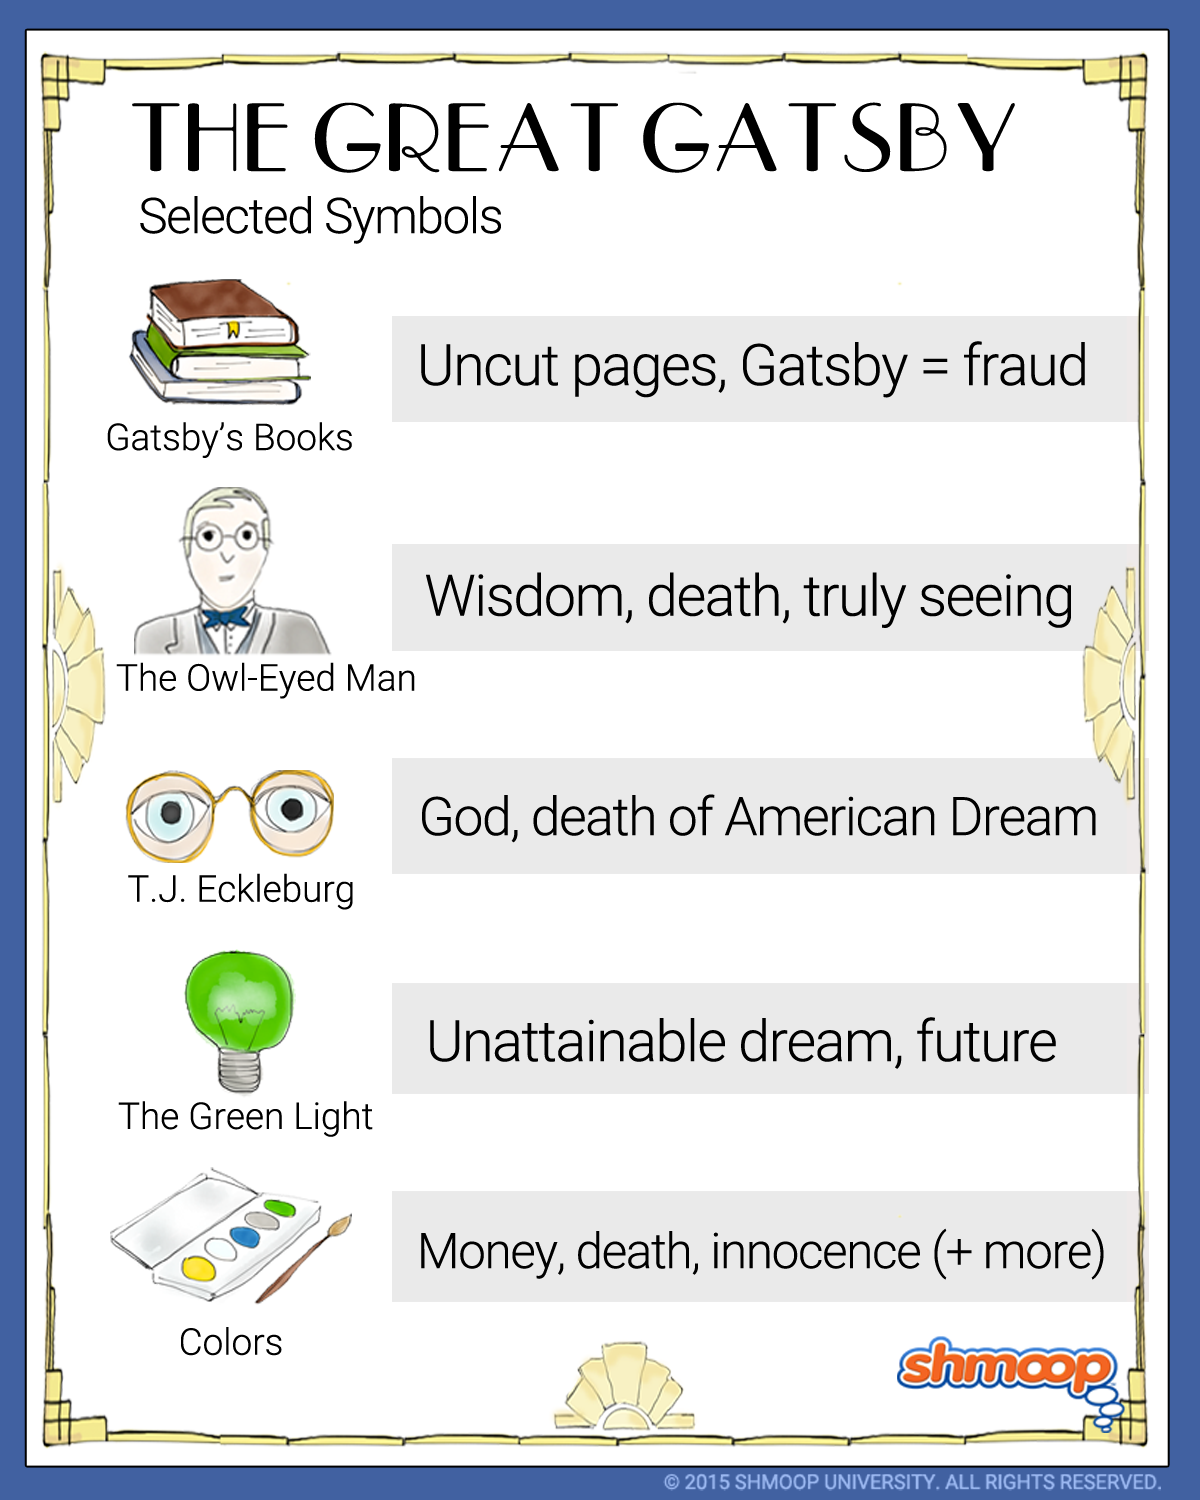 t j eckleburg in the great gatsby click the symbolism infographic to